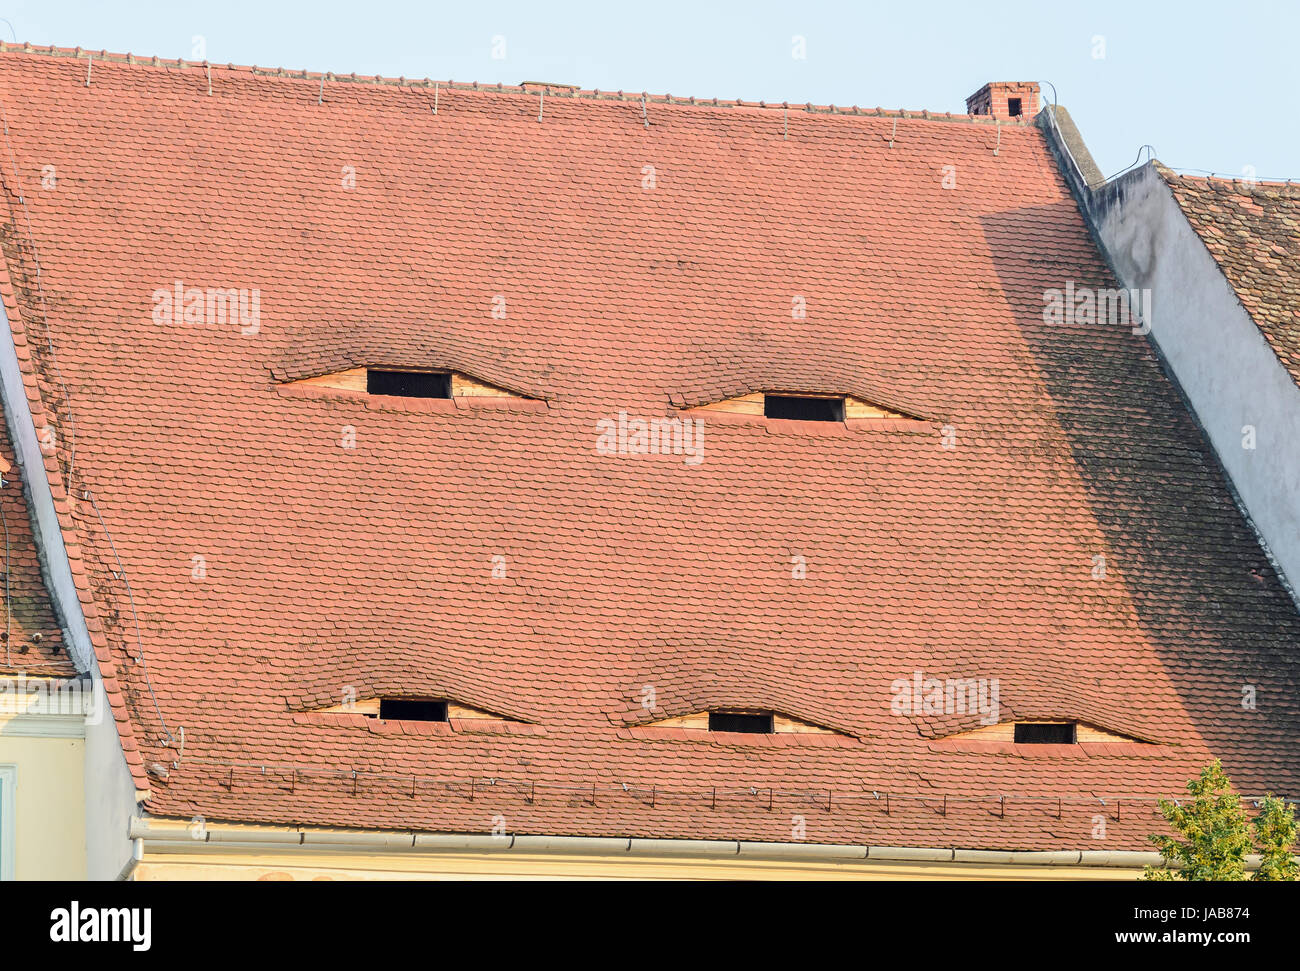 SIBIU, ROMANIA - AUGUST 10, 2016: Detail of houses situated near downtown of the city. Roof with eye windows - Stock Image